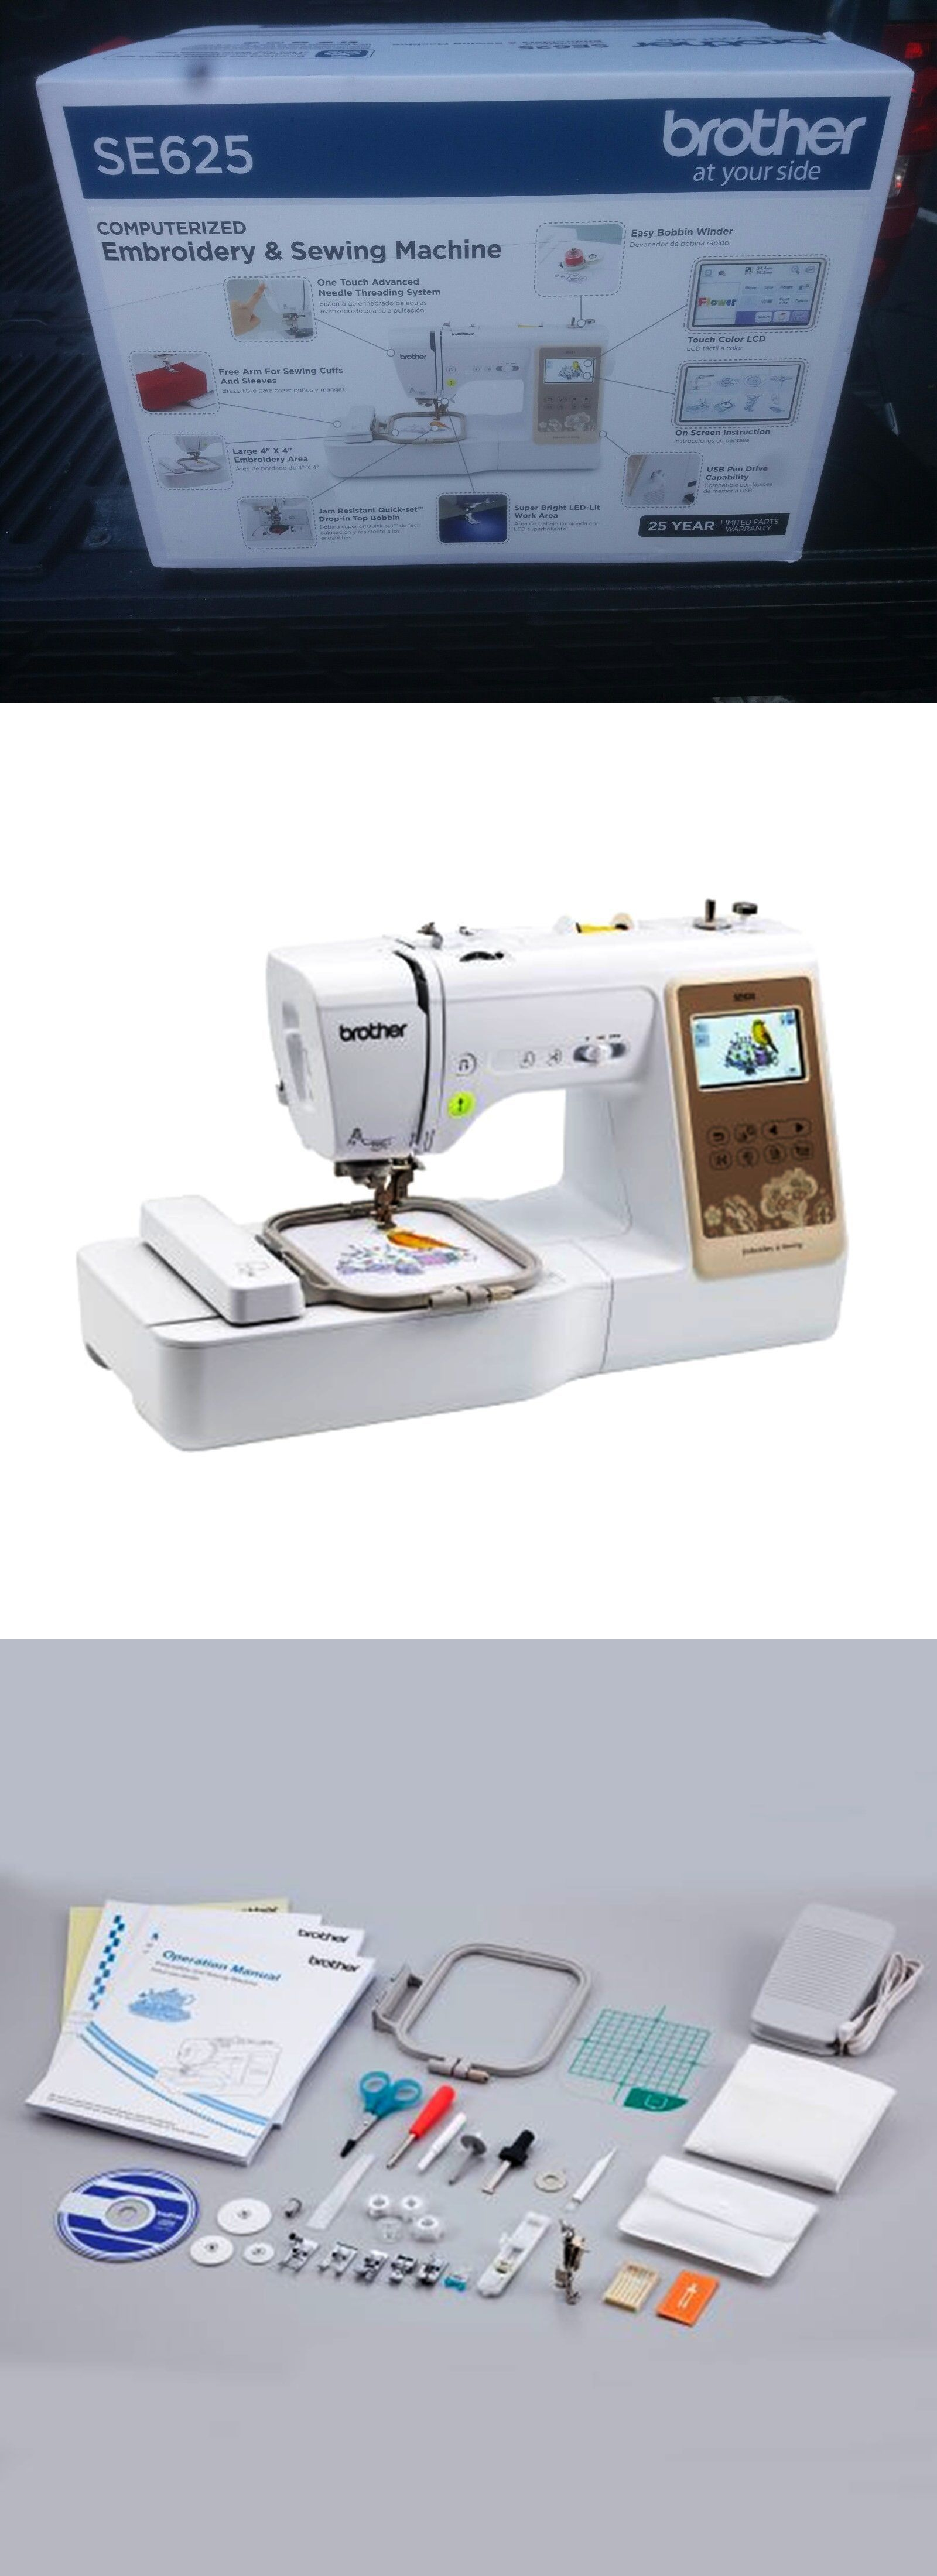 Sewing Machines and Sergers 3118: Brother Se625 Computerized Sewing ...